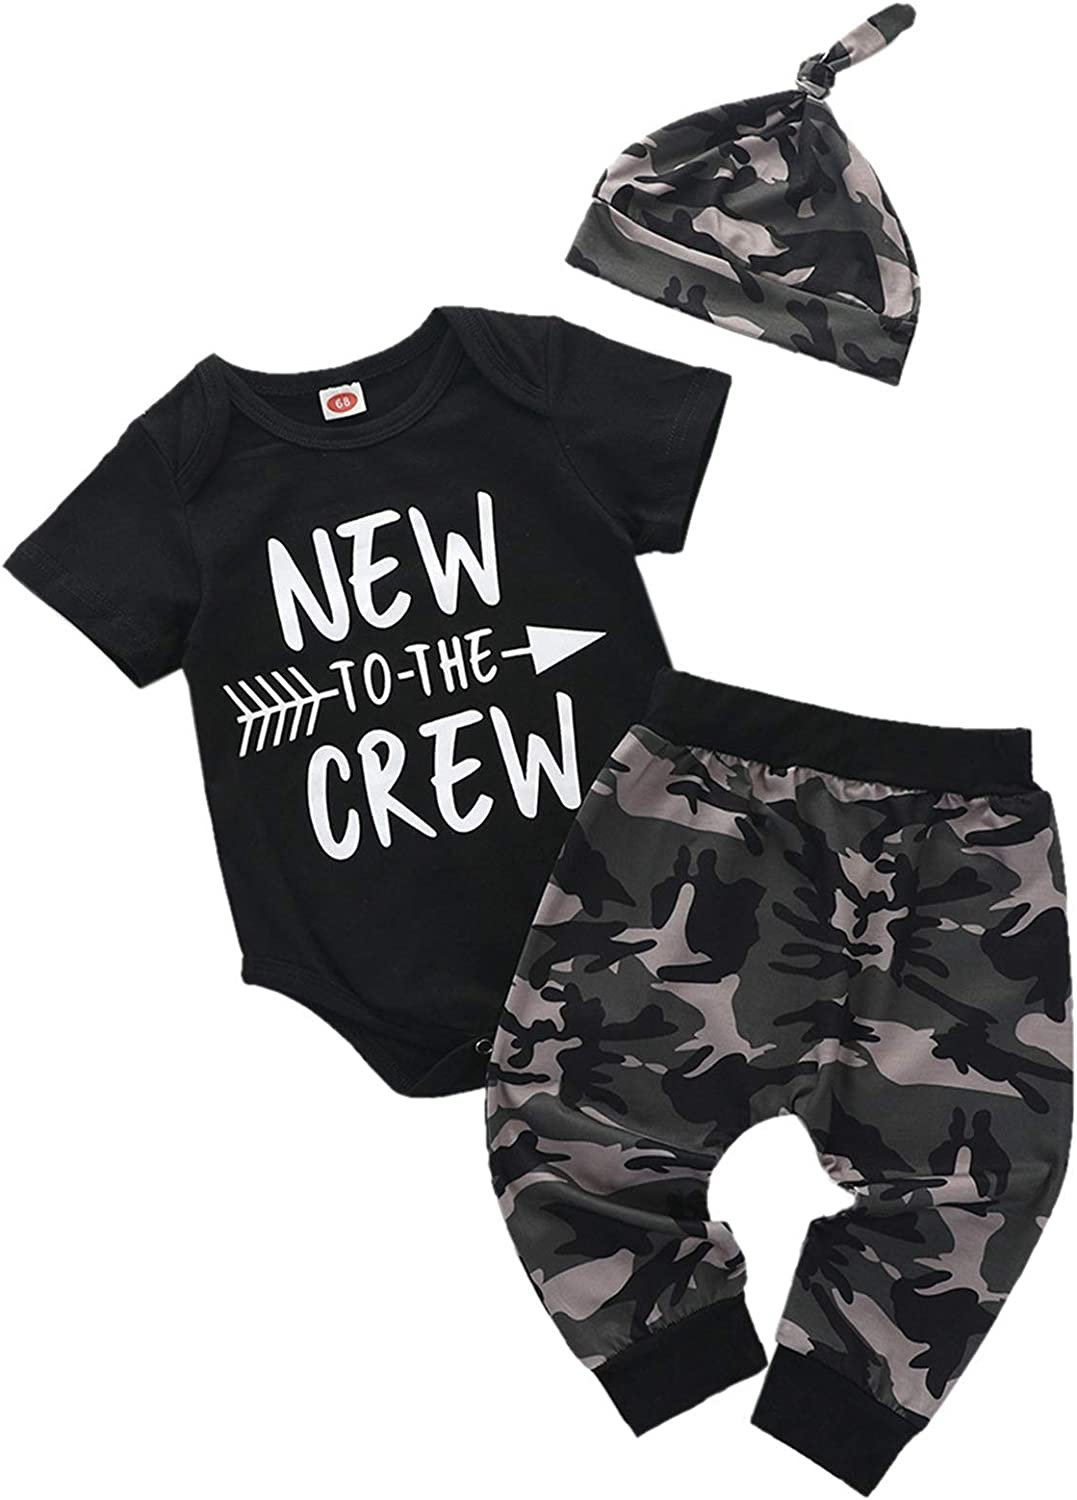 Tikoubabe Baby Boy Clothes Stuff Infant Summer Cute Letter New to The Crew Outfits 3 Pieces Romper + Camo Pants + Hat